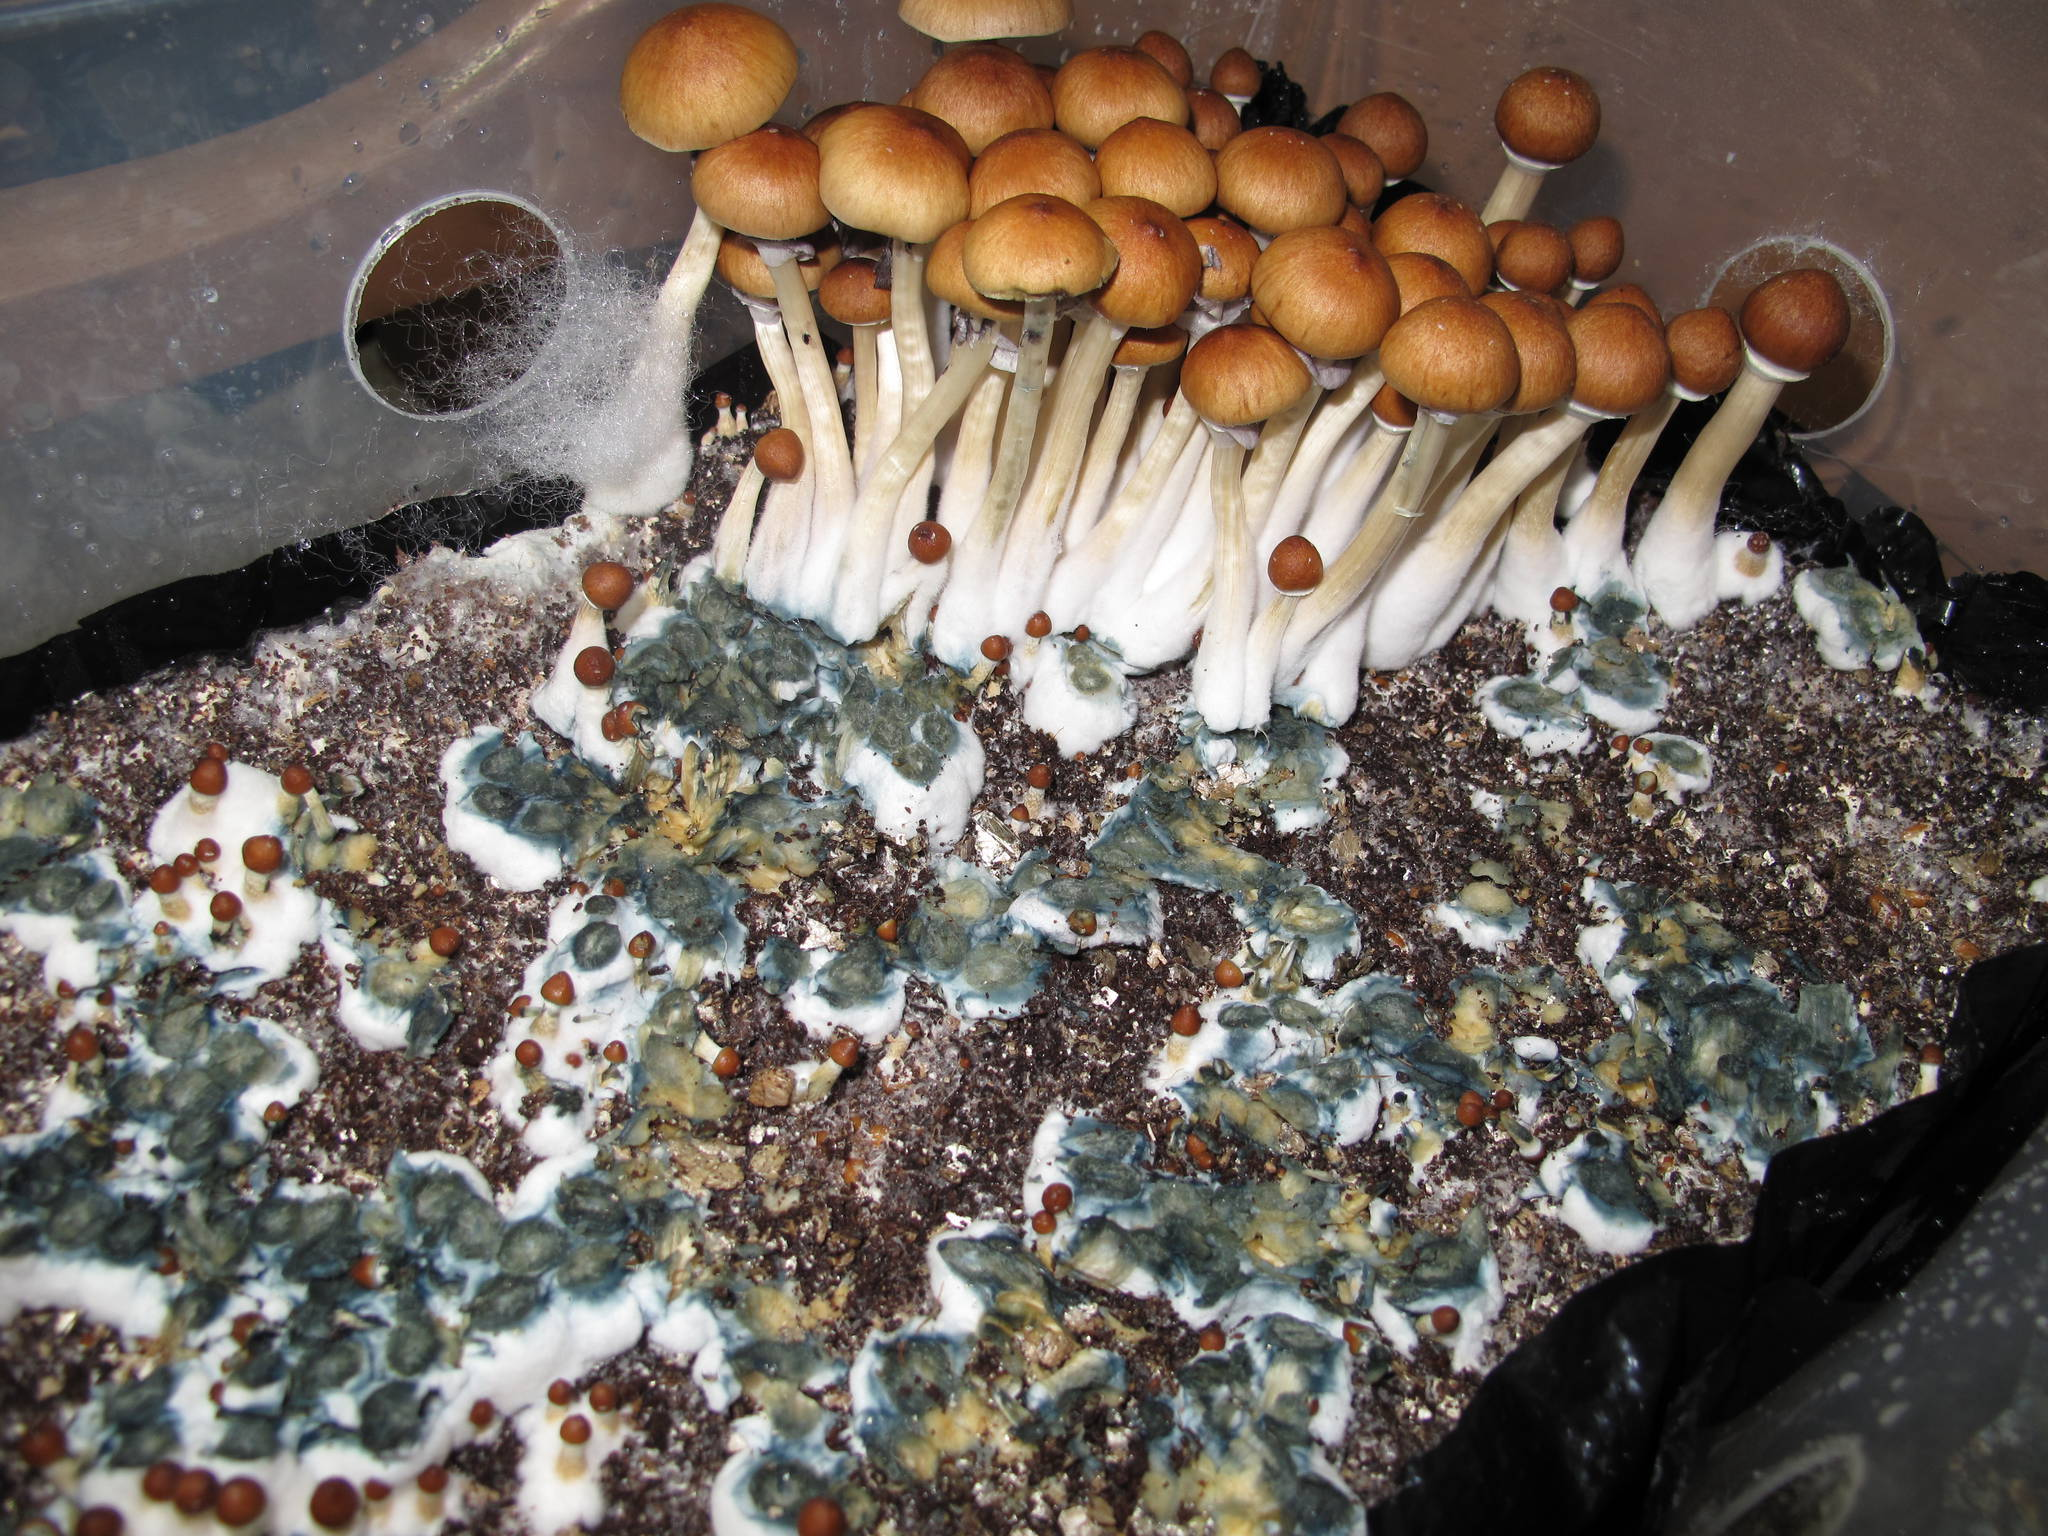 Cased grains vs Bulk Substrates: V-Tek meets Bulk - Mushroom